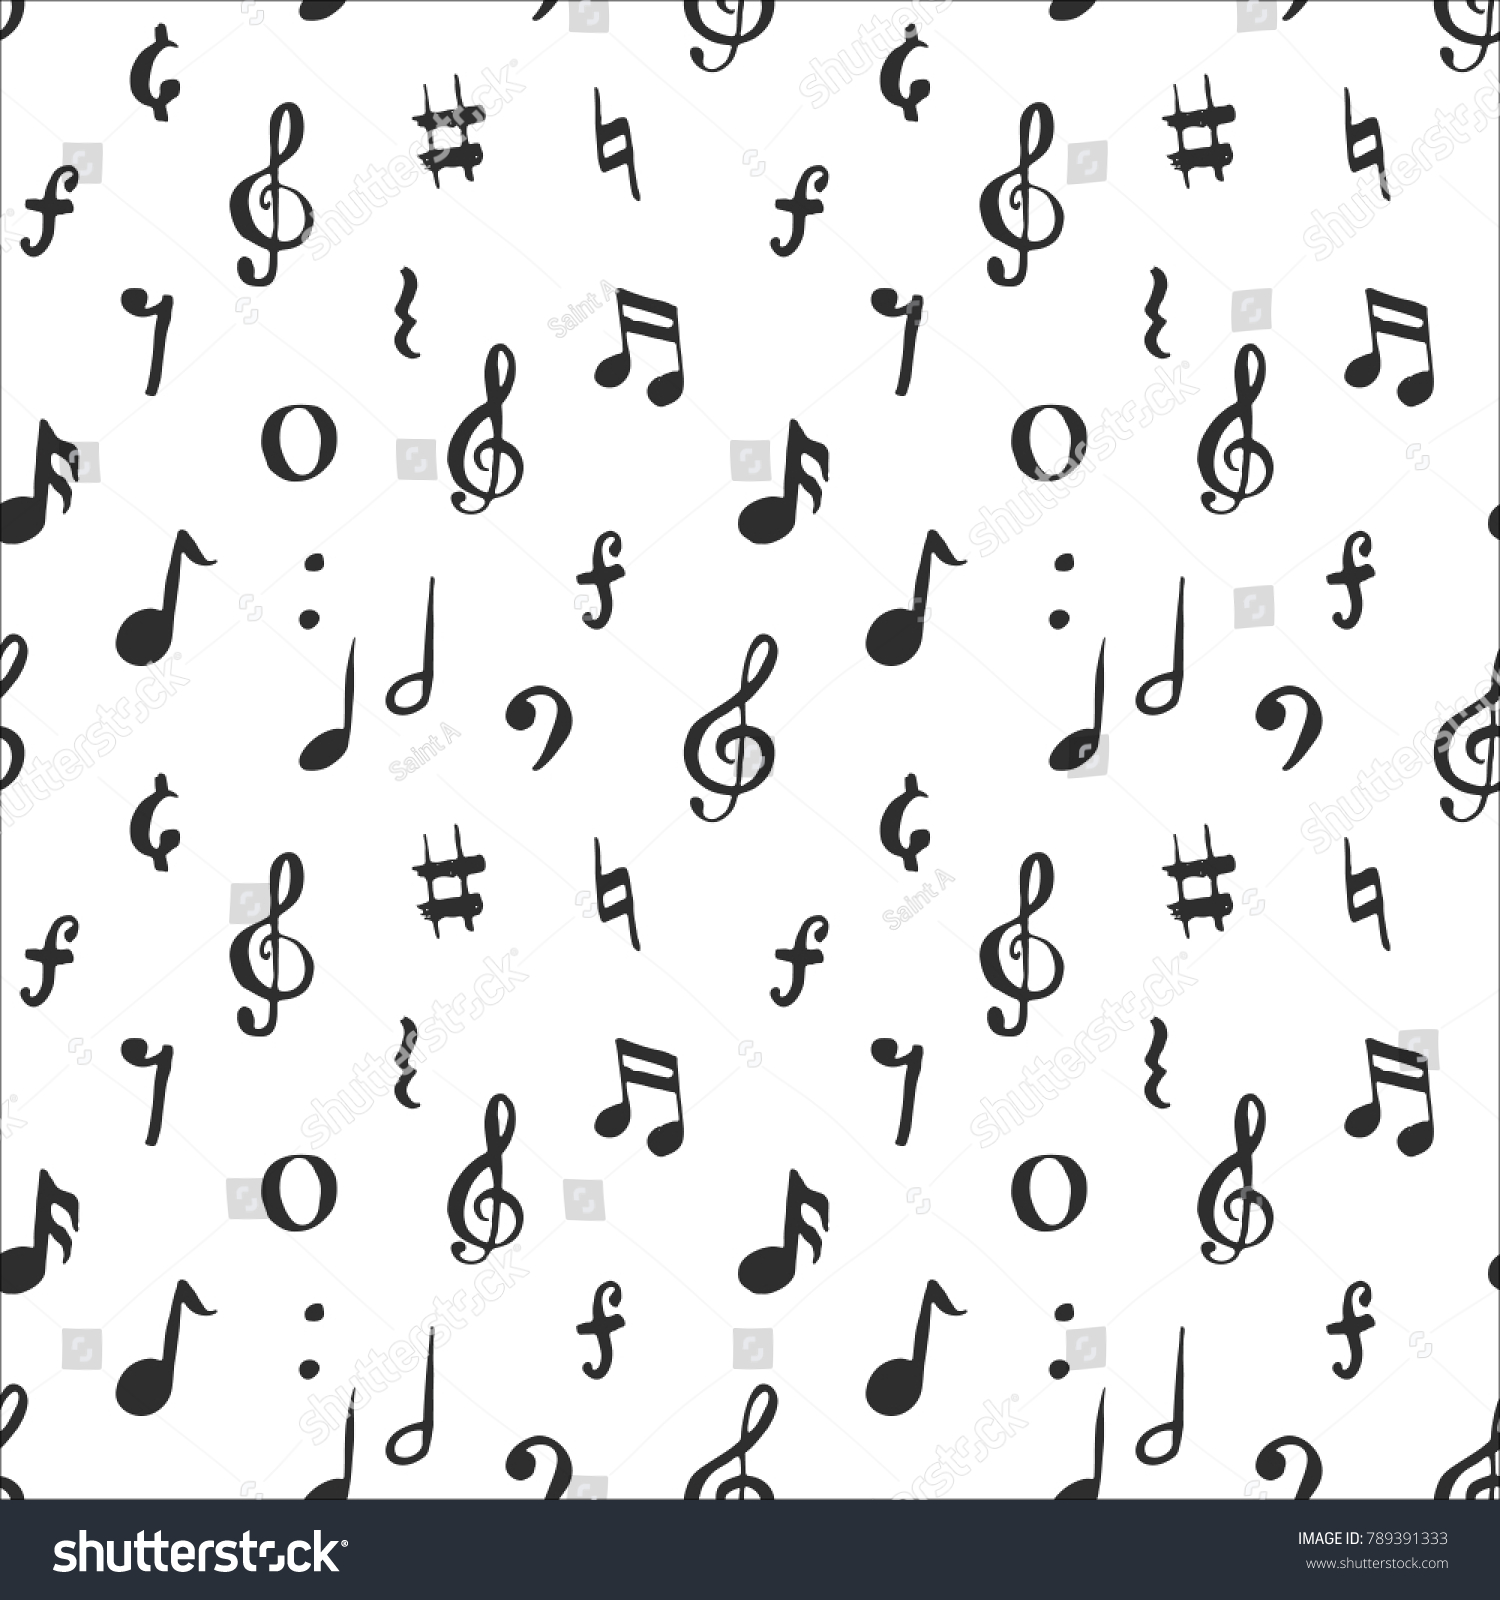 Music note symbols text images symbol and sign ideas music note seamless pattern vector illustration stock vector music note seamless pattern vector illustration hand drawn buycottarizona